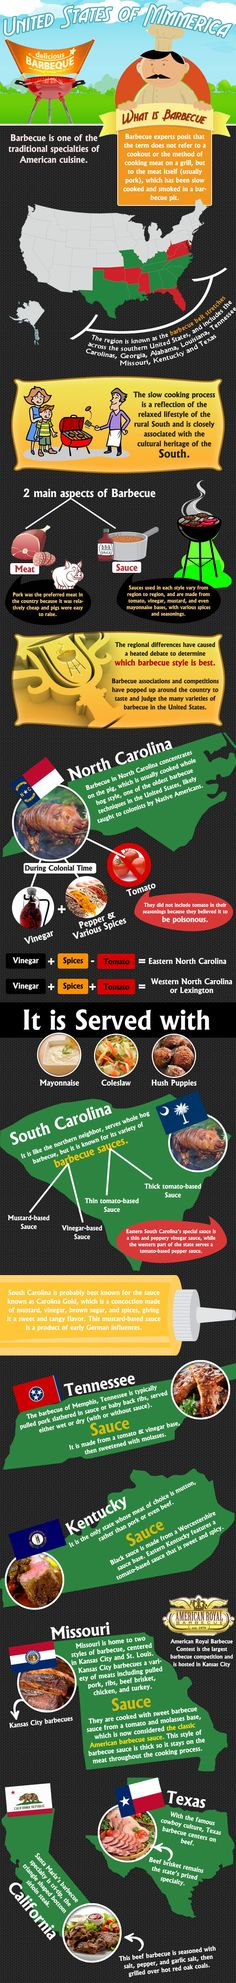 Mmmerica Barbecue/BBQ - Cool info graph on Yummie BBQ